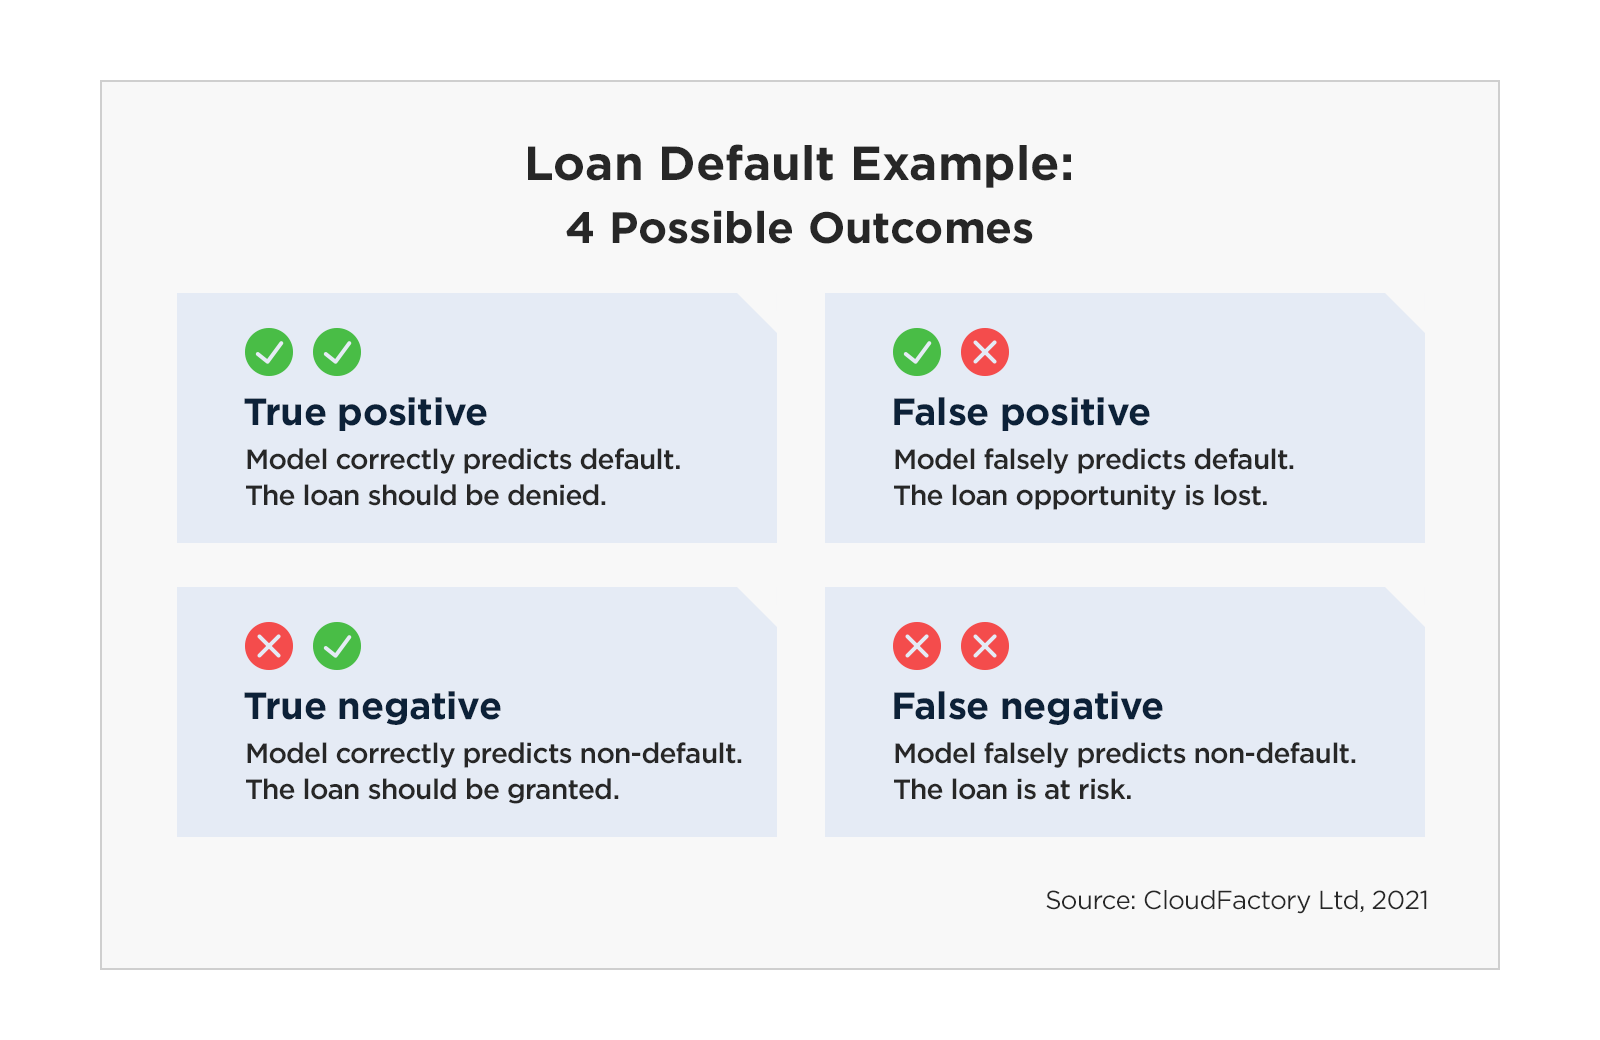 This image shows the four possible outcomes when building a model to predict loan default. Outcome 1: True positive. The model correctly predicts default, and the loan should be denied. Outcome 2: True negative. The model correctly predicts non-default, and the loan should be granted. Outcome 3: False positive. The model falsely predicts default, and the loan opportunity is lost. Outcome 4: False negative. The model falsely predicts non-default, and the loan is at risk.